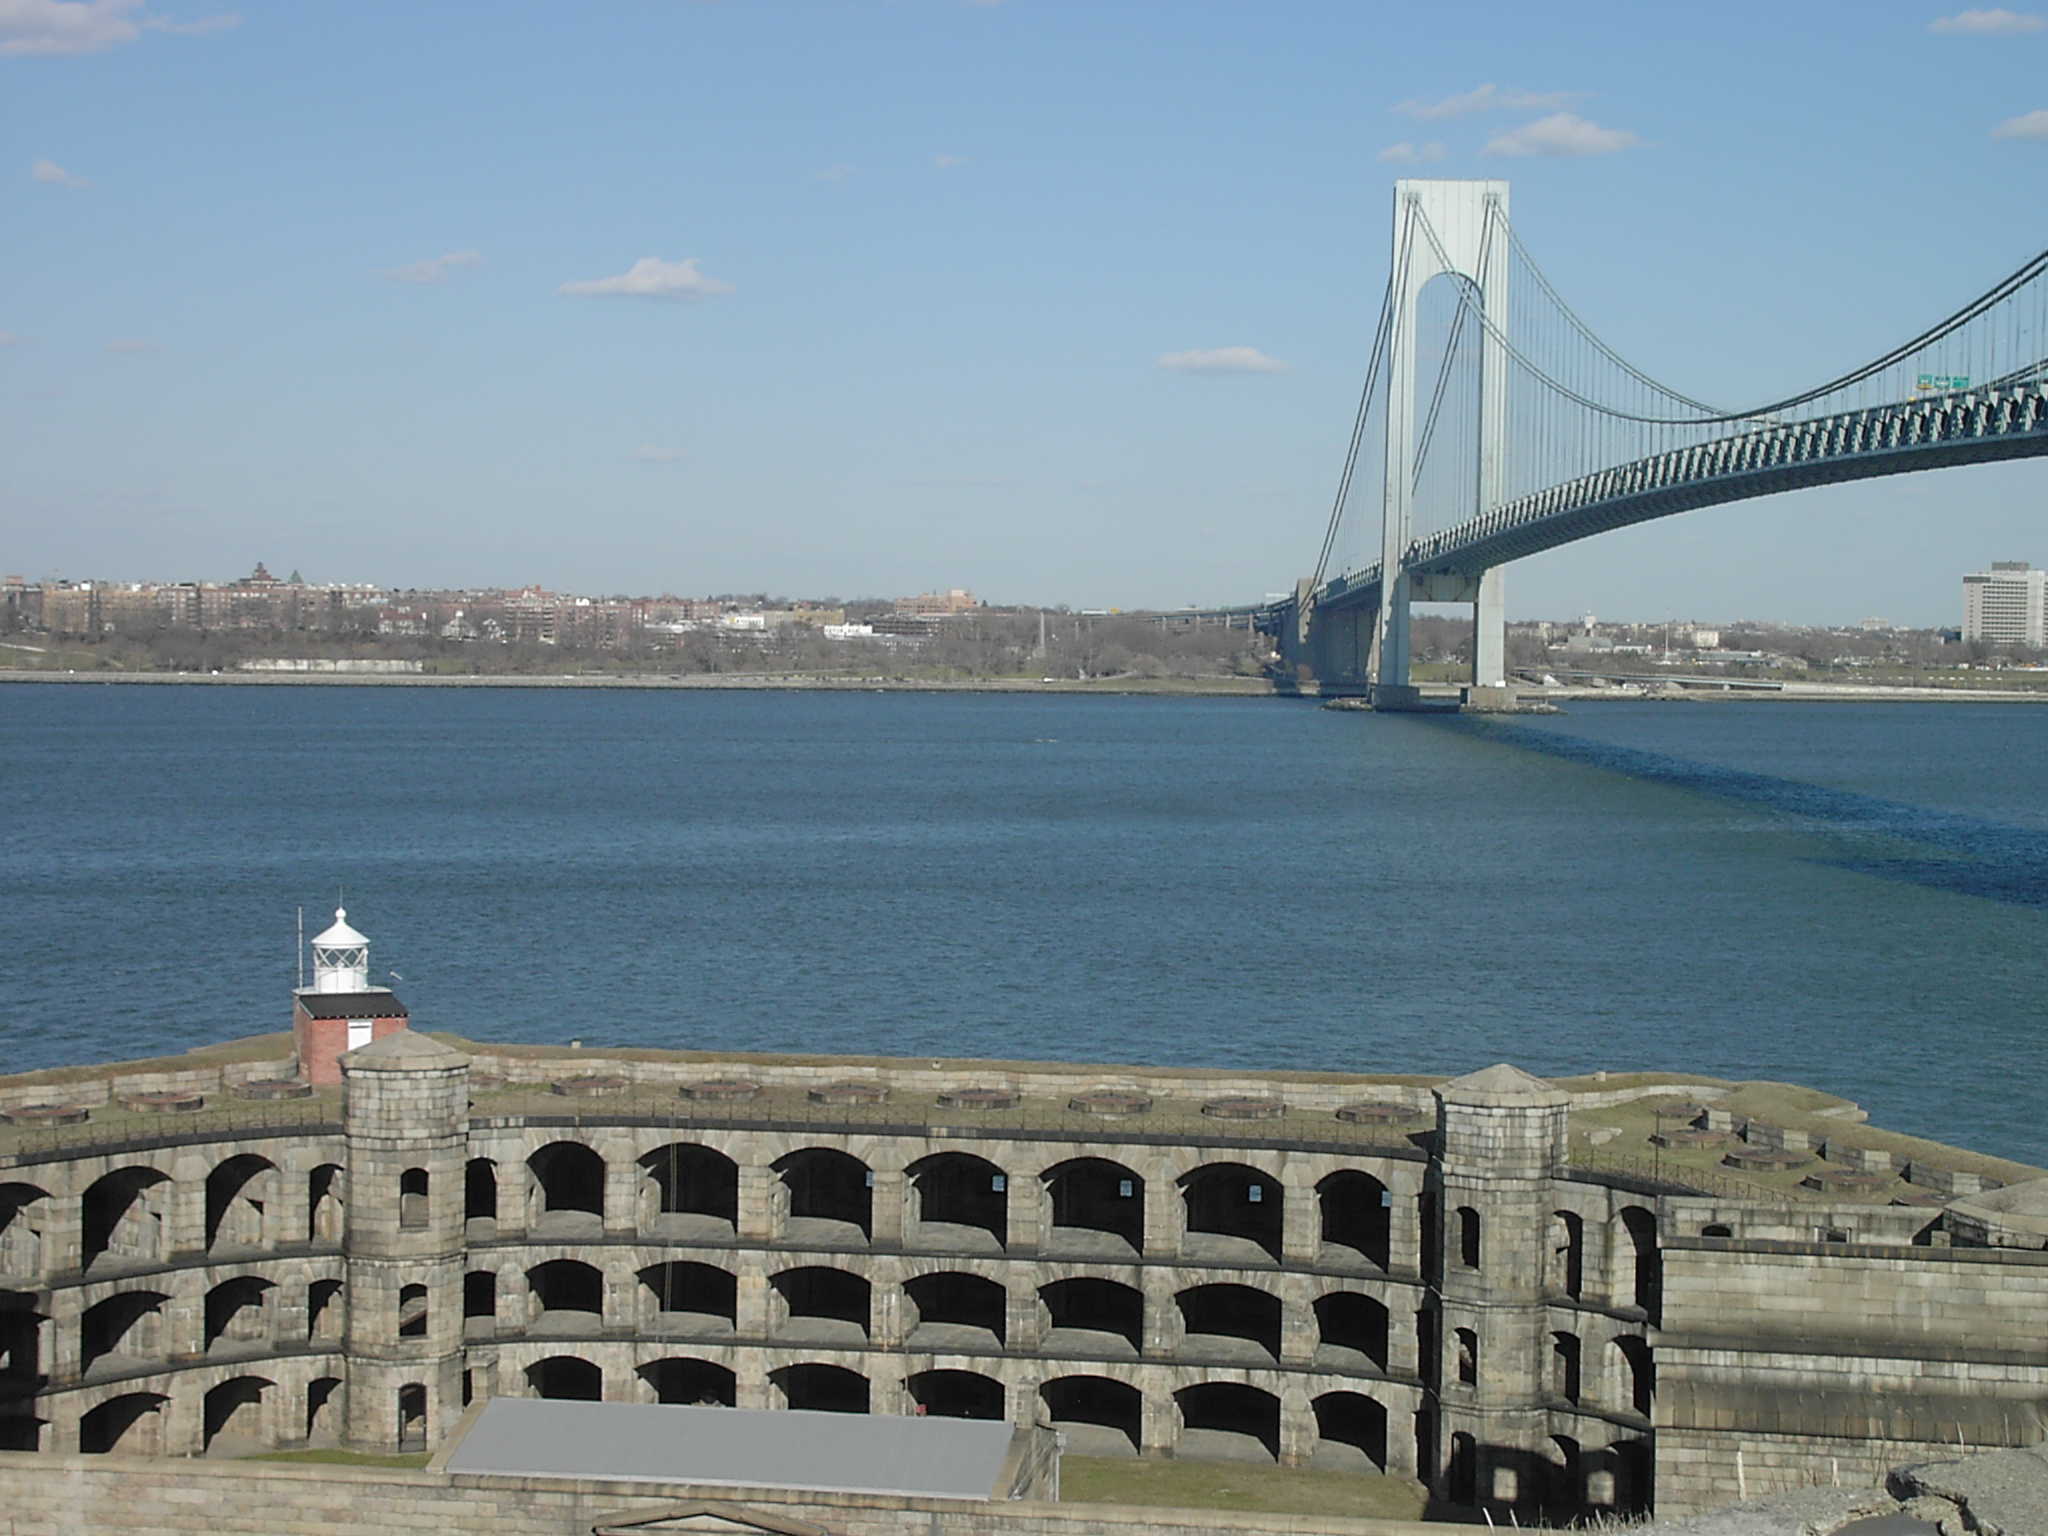 Fort Wadsworth & Verrazano-Narrows Bridge